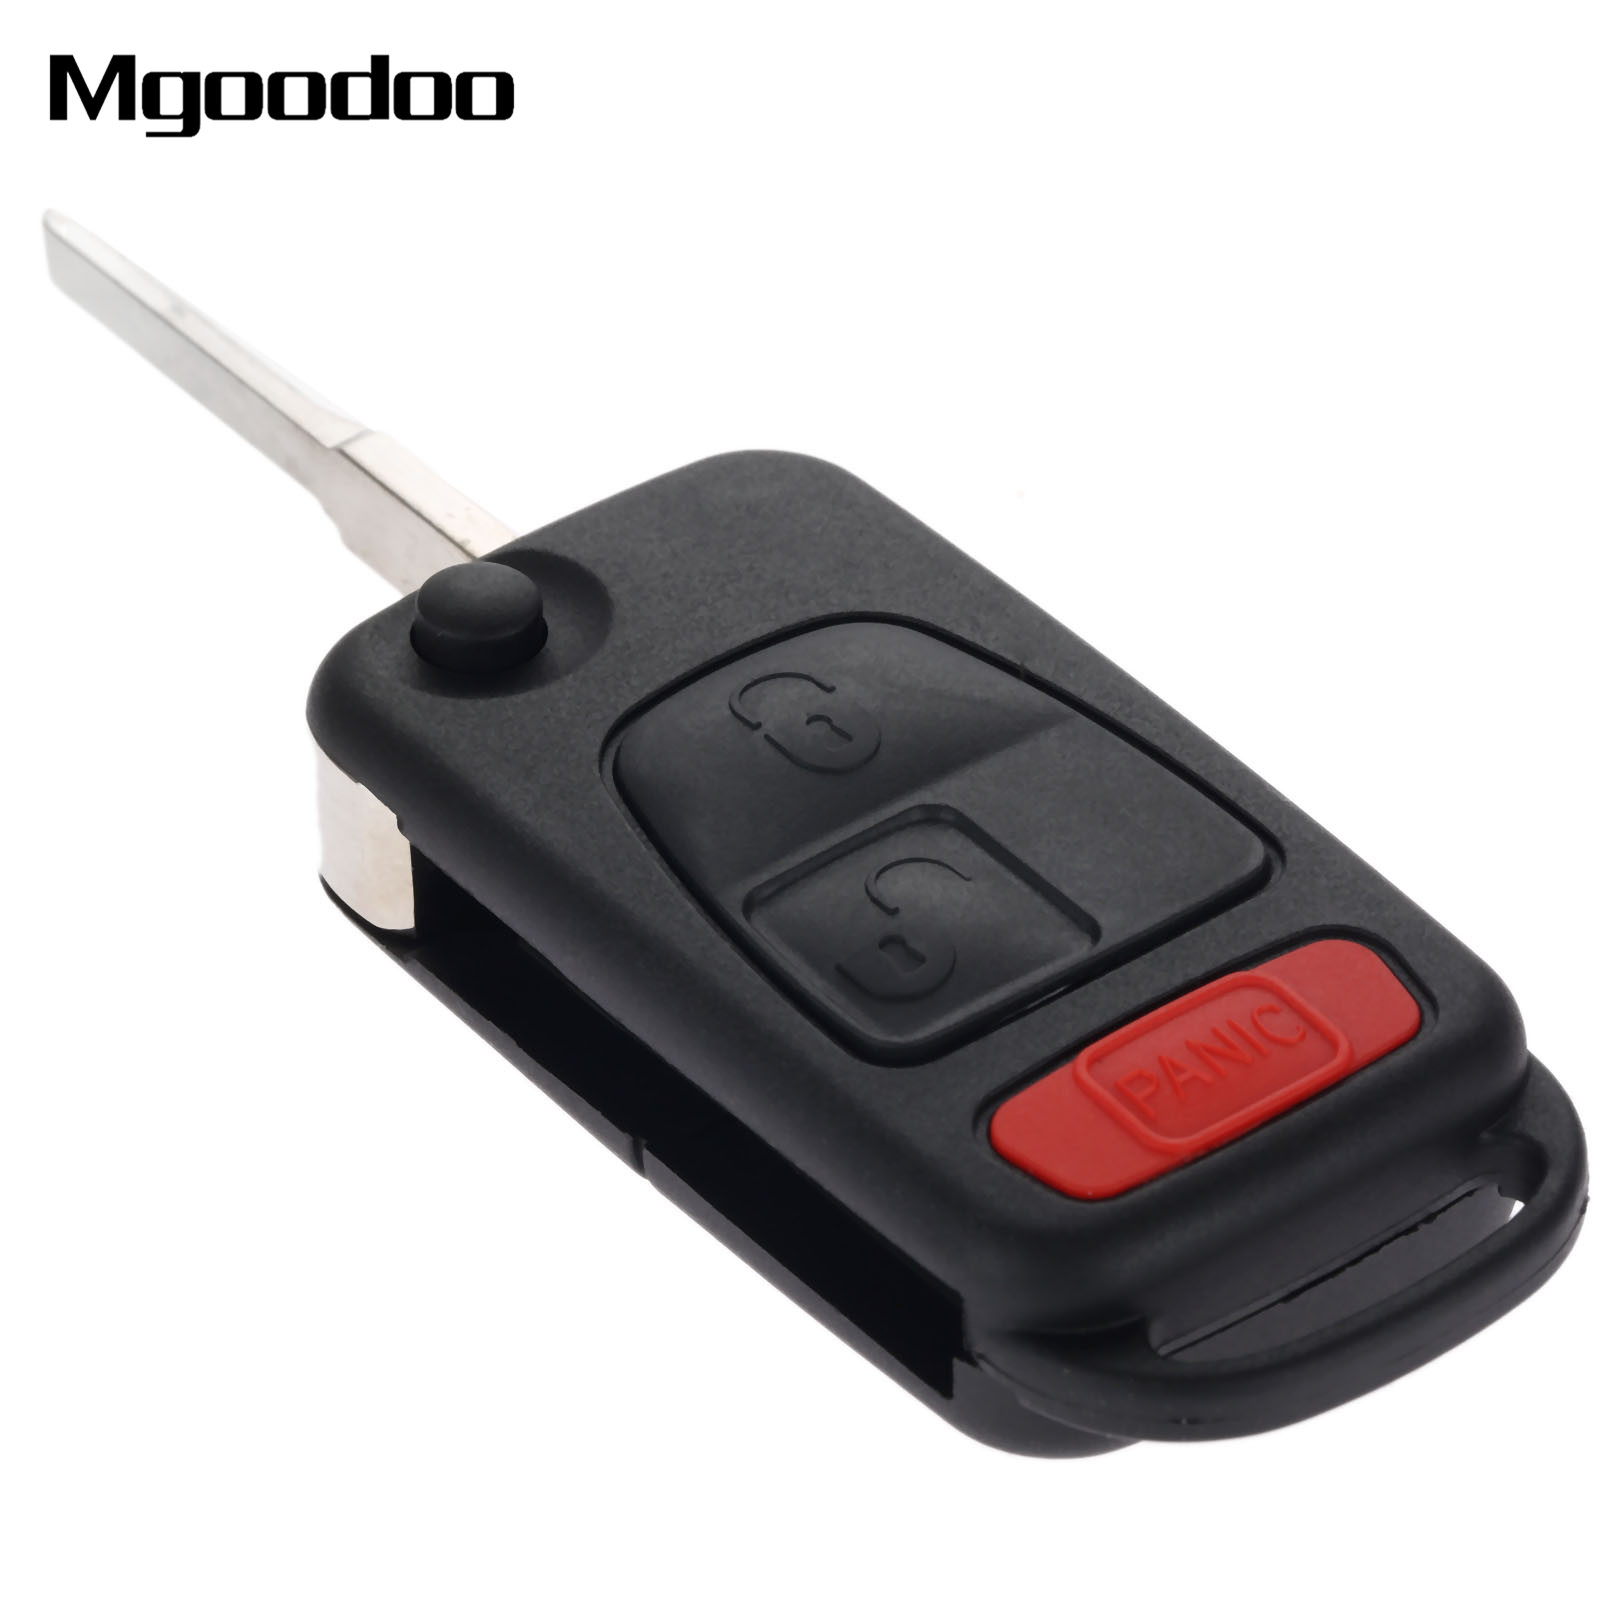 Mgoodoo 2 1 Button Folding Replacement Fob Entry Remote Flip Key Way Switch Shell Case For Mercedes Benz Slk230 Slk320 Slk32 Amg Car Covers In From Automobiles